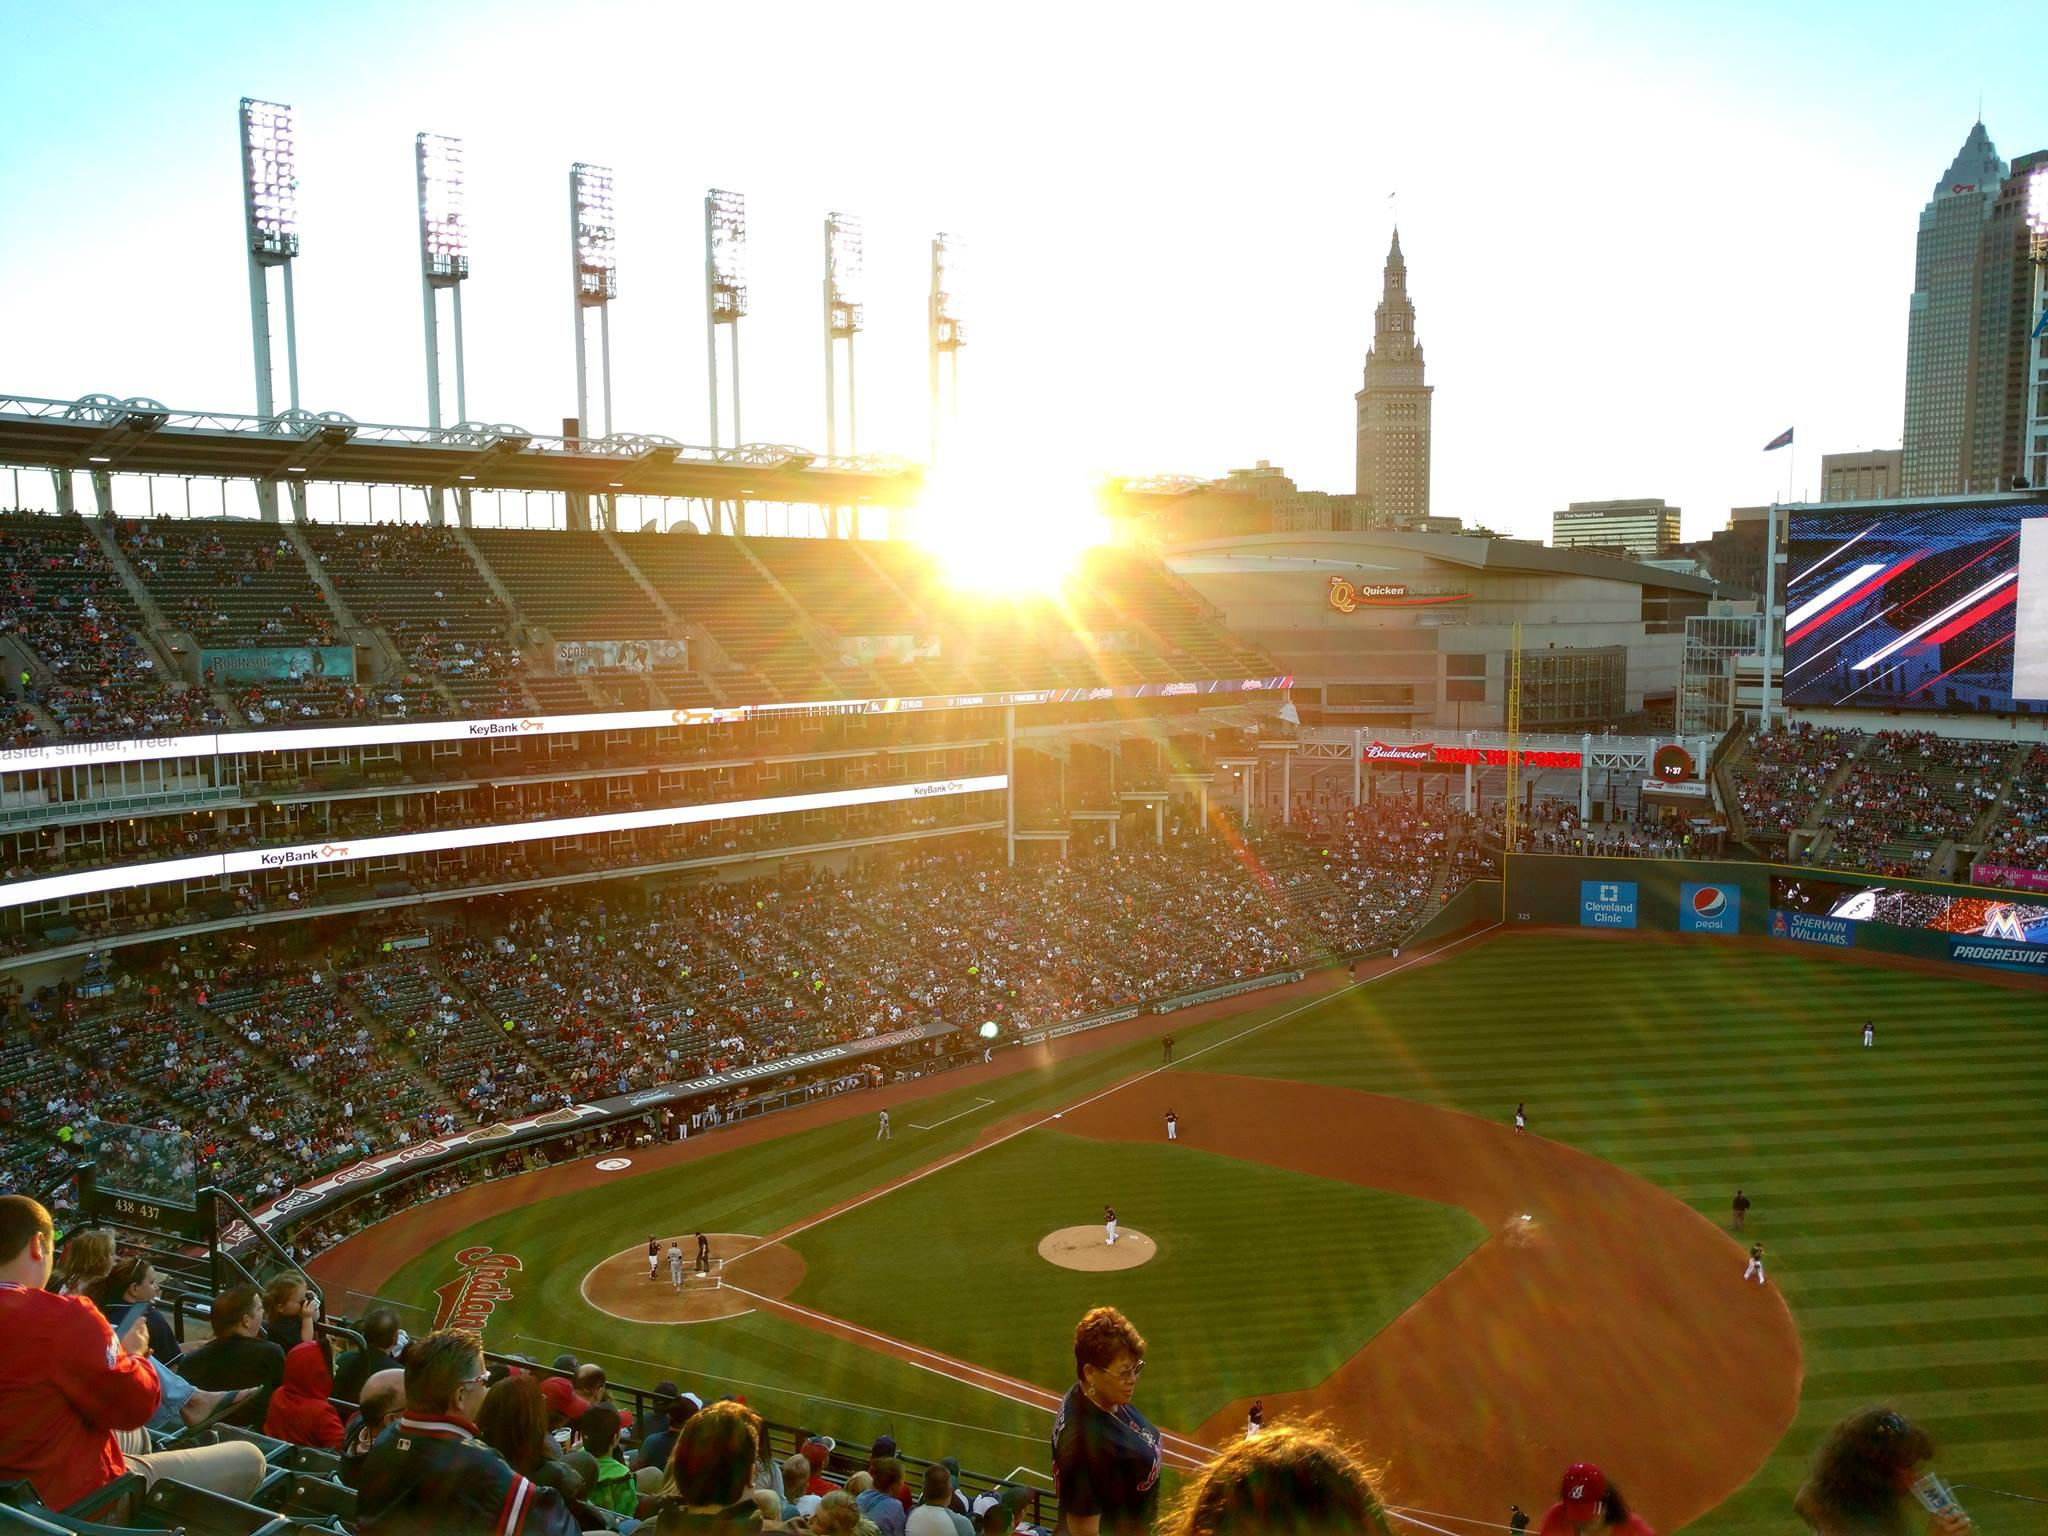 Cleveland Indians vs. Oakland Athletics At Progressive Field